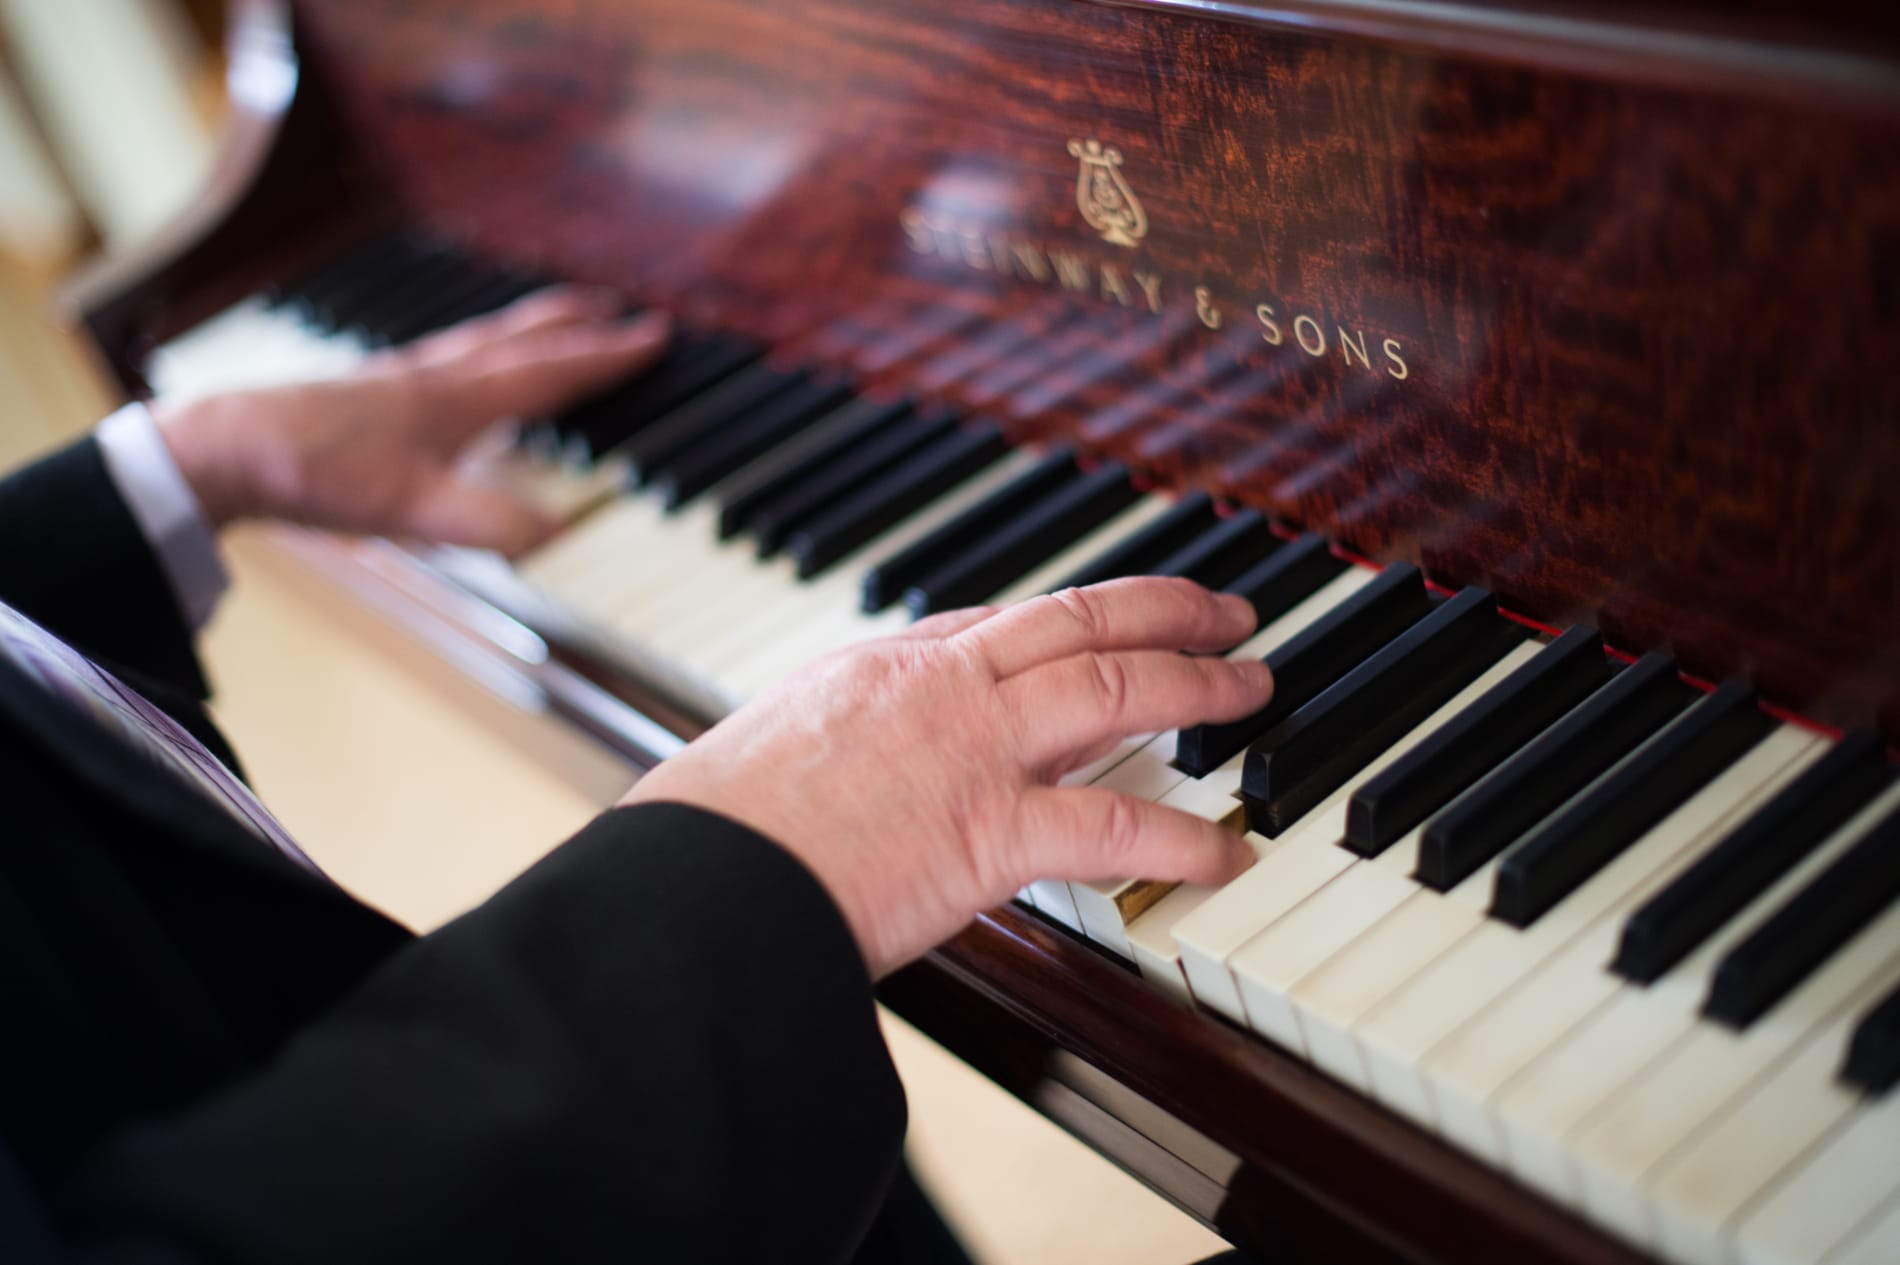 A close up of a man's hands playing a Steinway piano.